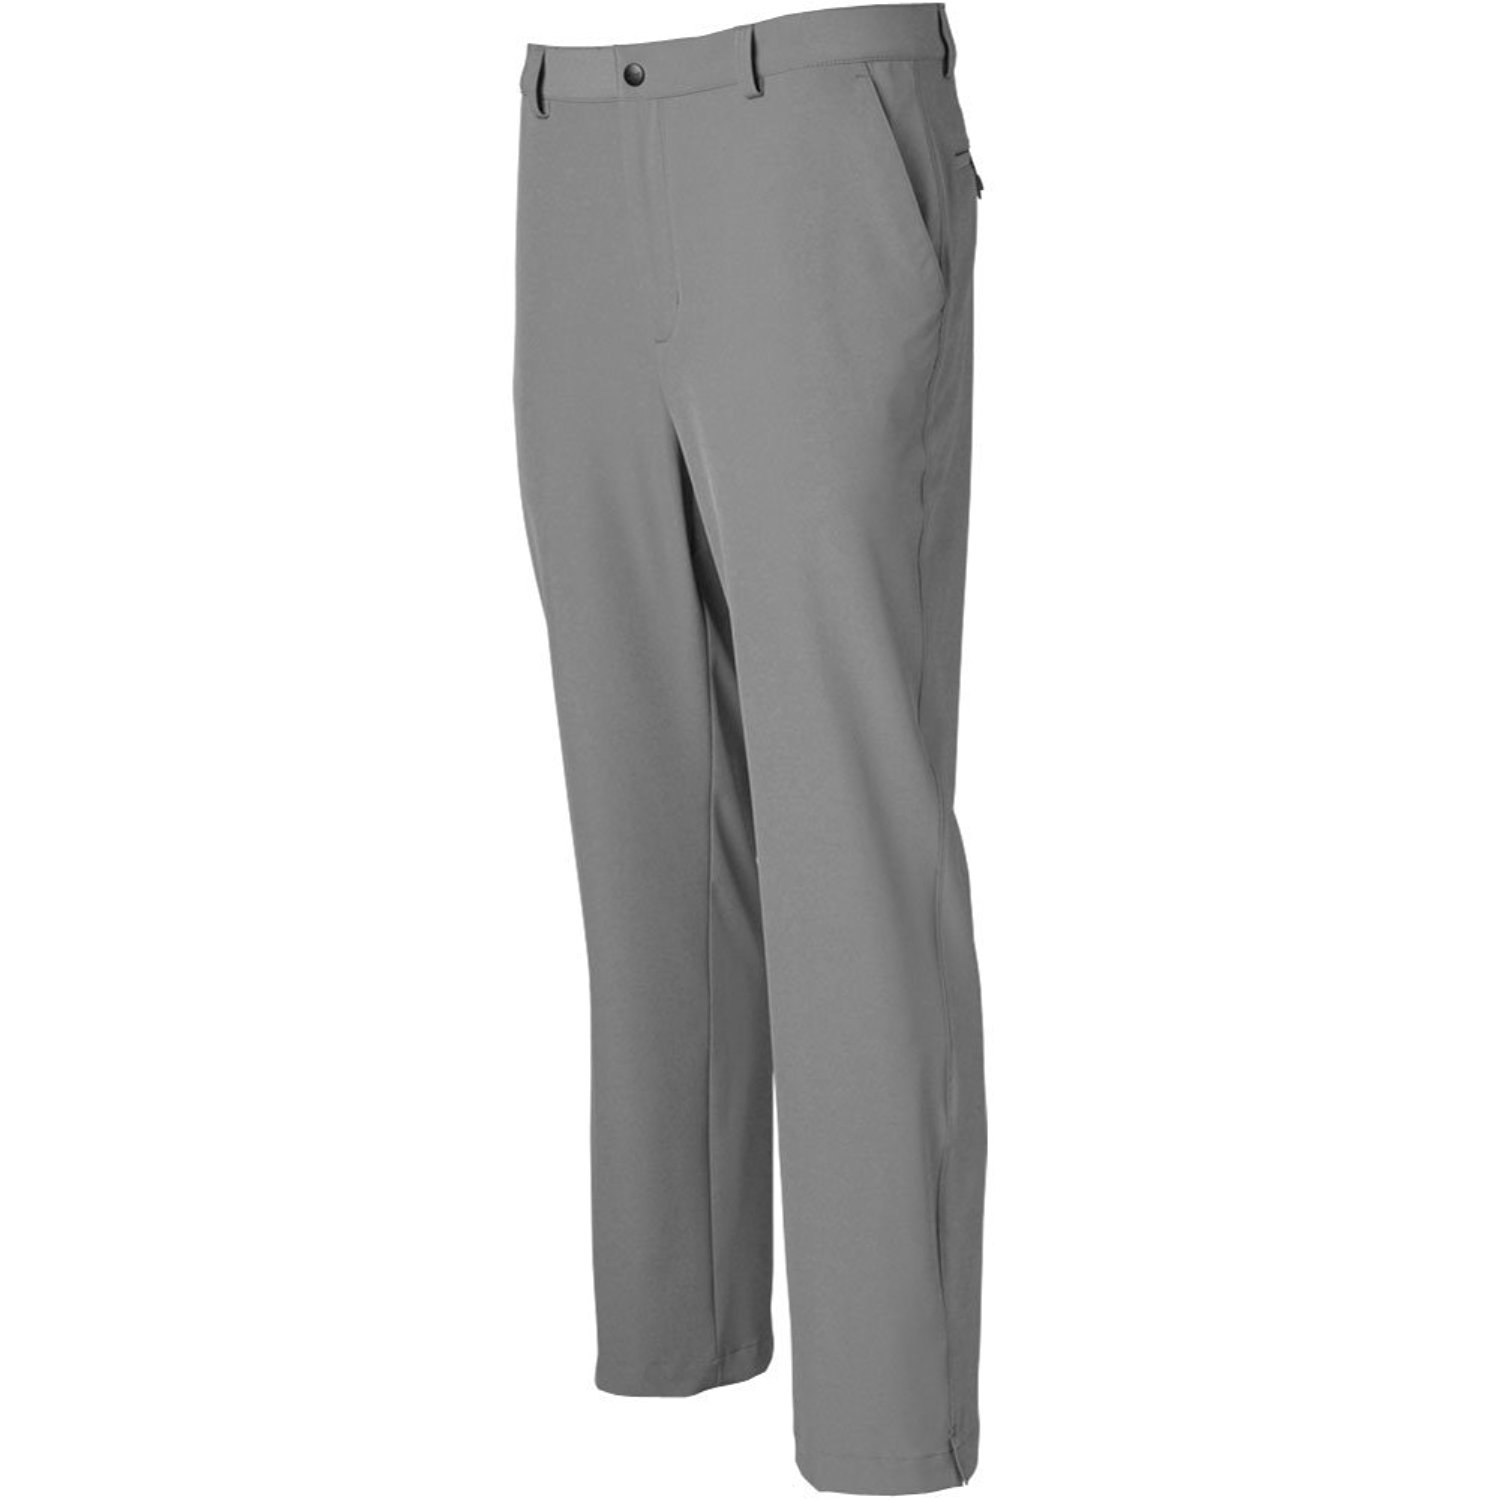 c1dbe4f6 Get Quotations · Greg Norman Mens Ml75 Micro Lux Flat Front Pants Grey 32 30